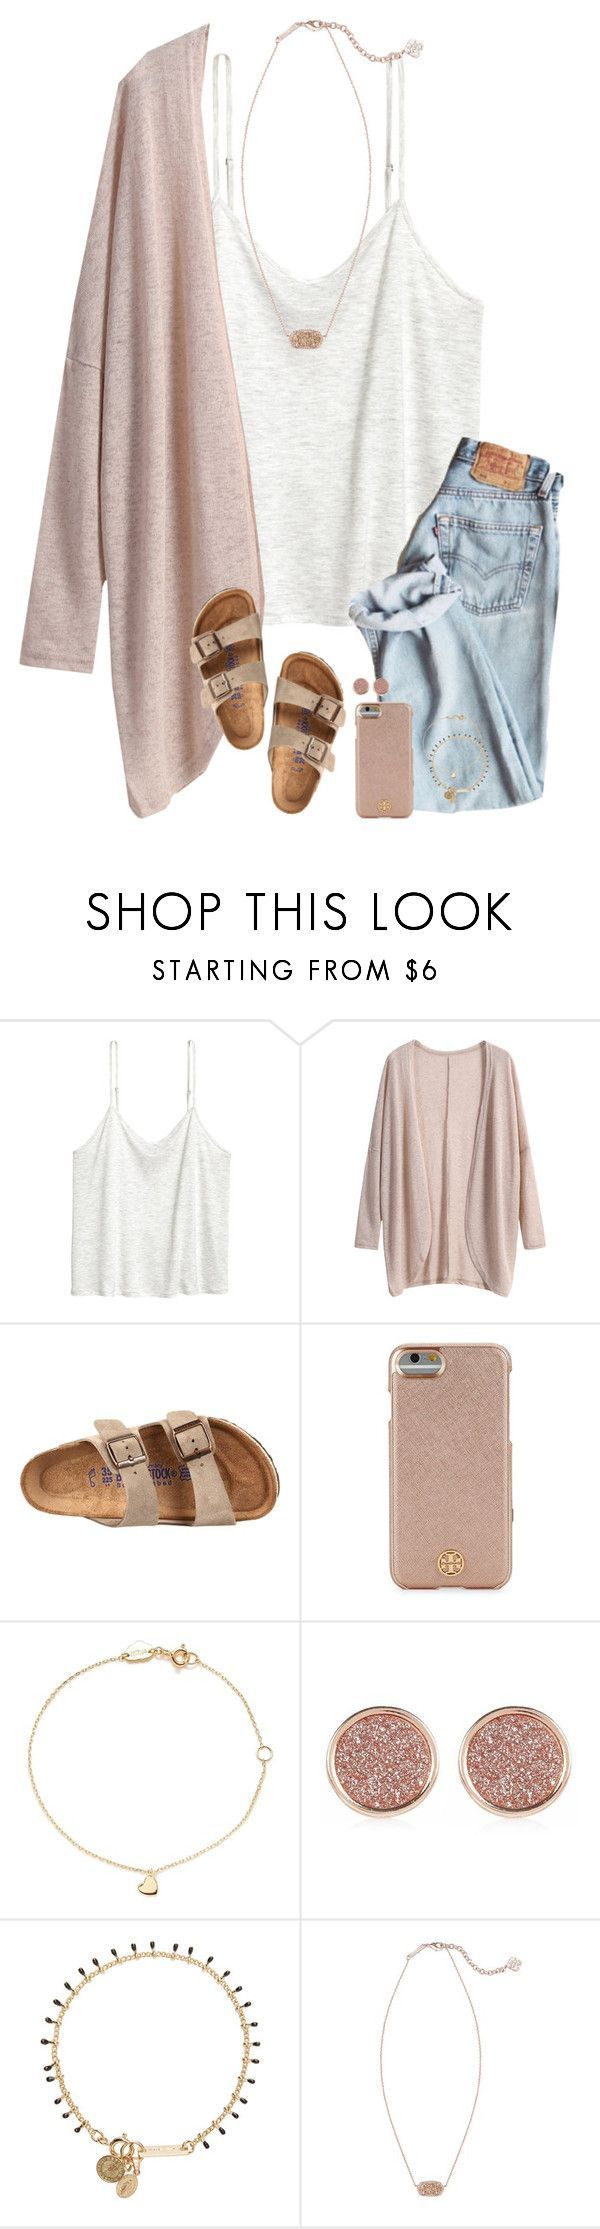 """HIGH SCHOOL STUDENTS; advice on seminars??"" by twaayy ❤ liked on Polyvore featuring Linne, Birkenstock, Tory Burch, Estella Bartlett, River Island, Isabel Marant and Kendra Scott"